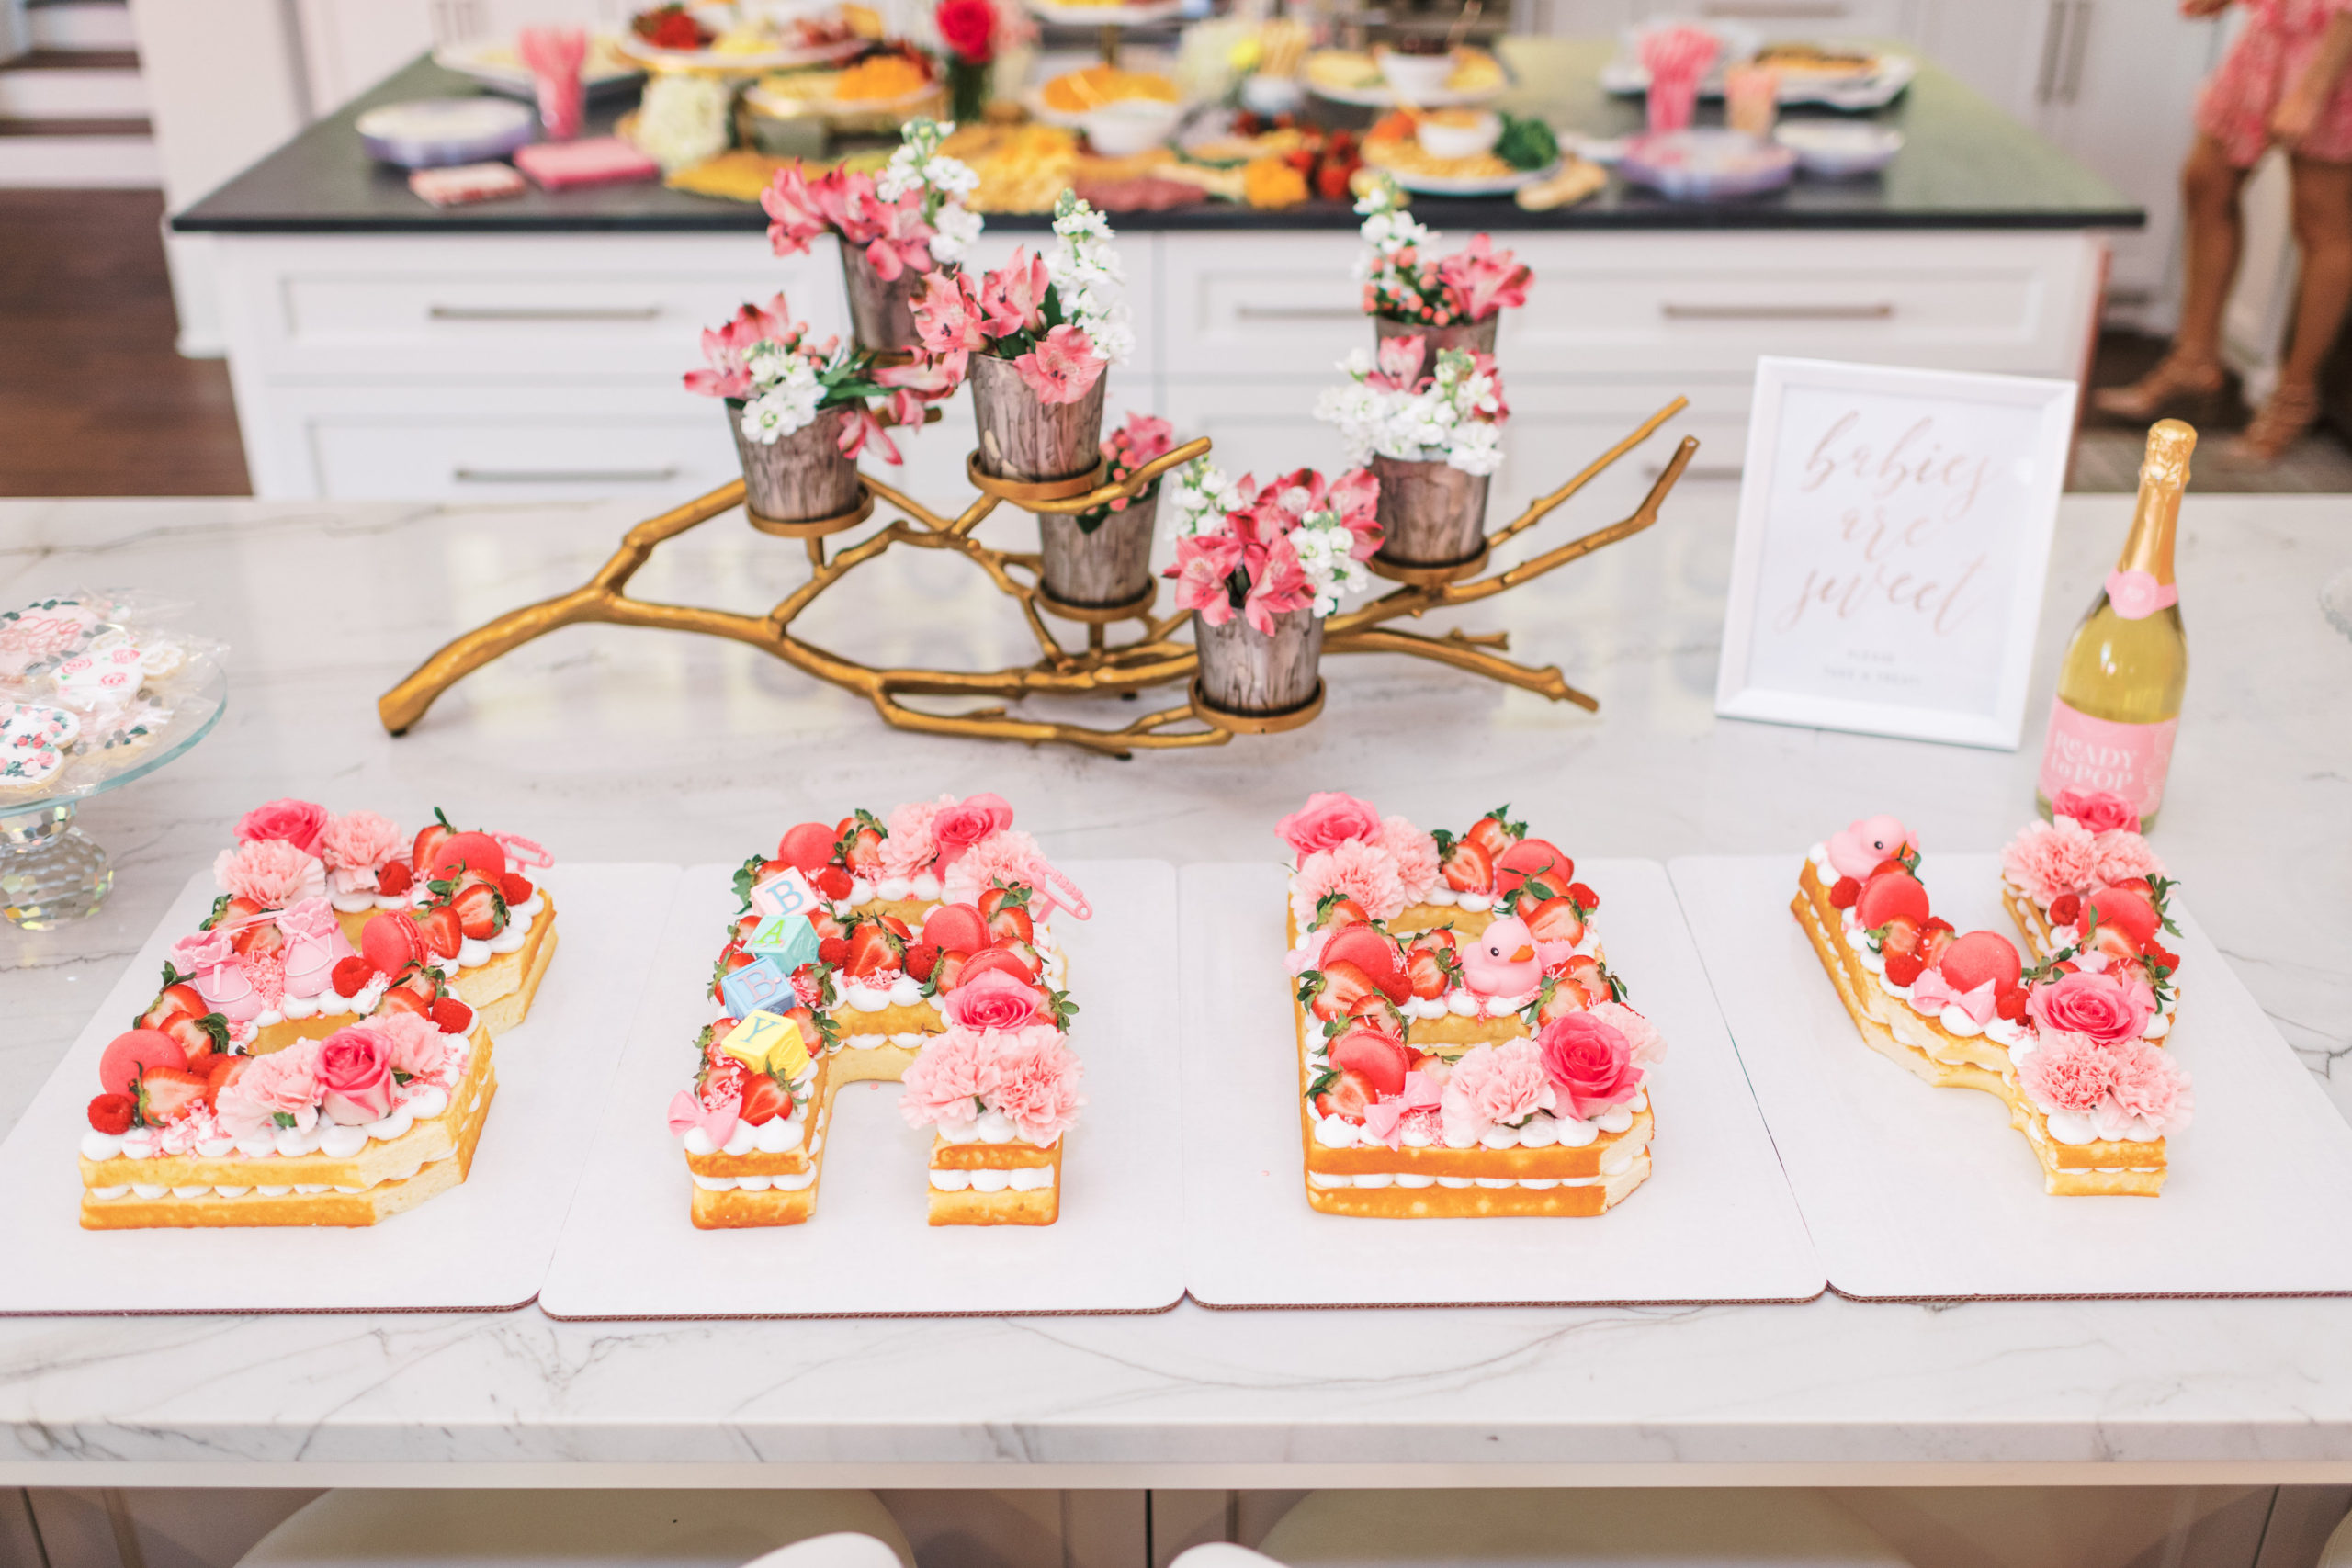 Cute Pink Baby Shower Ideas featured by top Houston lifestyle blogger and expecting mom, Jessica Crum. | Pink Baby Shower by popular Houston motherhood blogger, Jessica Crum: image of a pink baby shower cake by Busy Bees Bakery HTX.